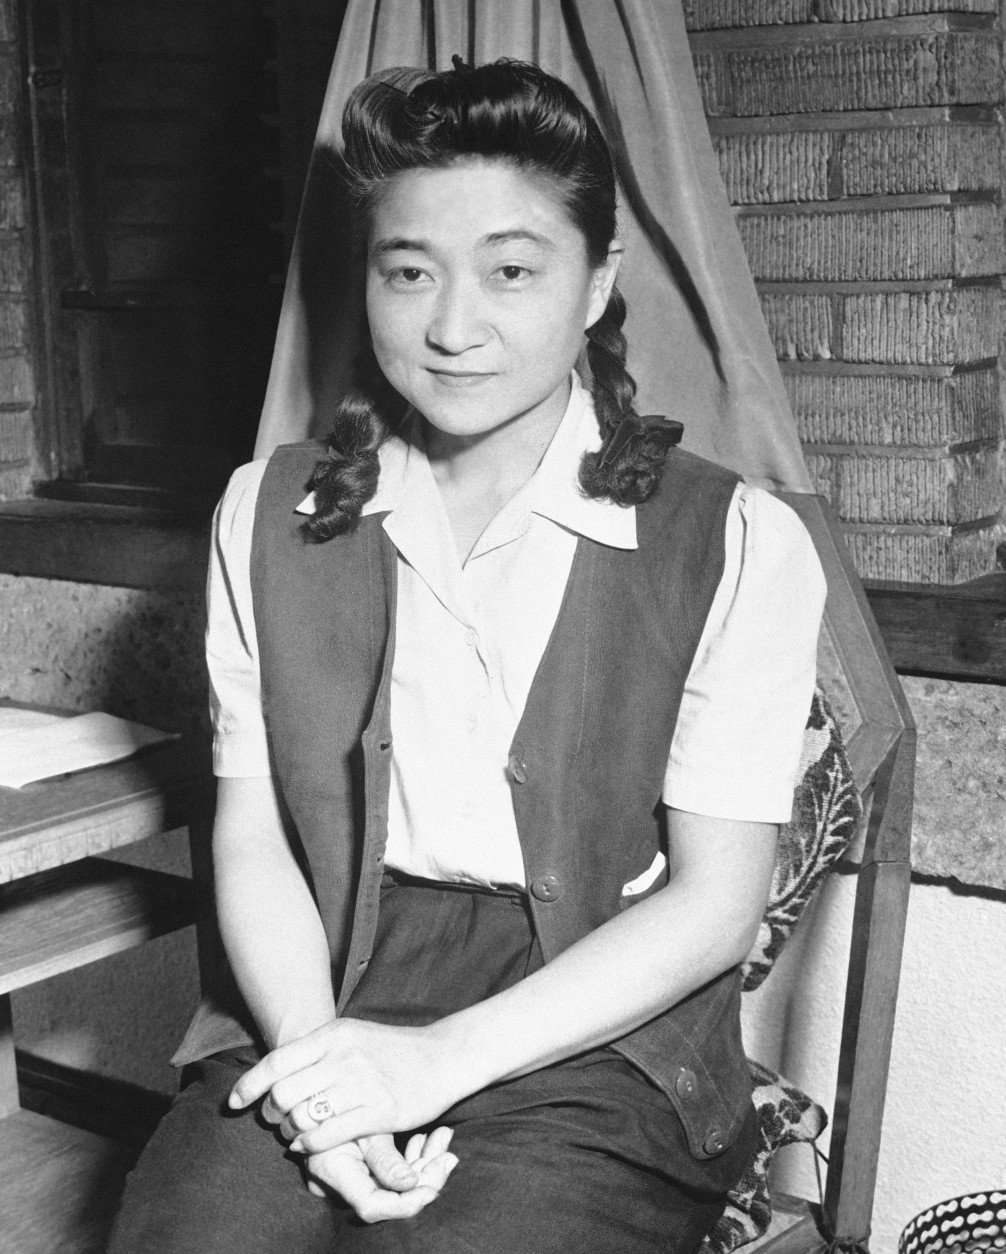 Iva Iuka Toguri, 30-year-old graduate of the University of California, known to thousands of  soldiers in the Pacific area as Tokyo Rose through her propaganda broadcasts for the Japanese.   She rests after an interview on Sept. 5, 1945 in Tokyo following her capture by American Forces.  (AP Photo/pool)